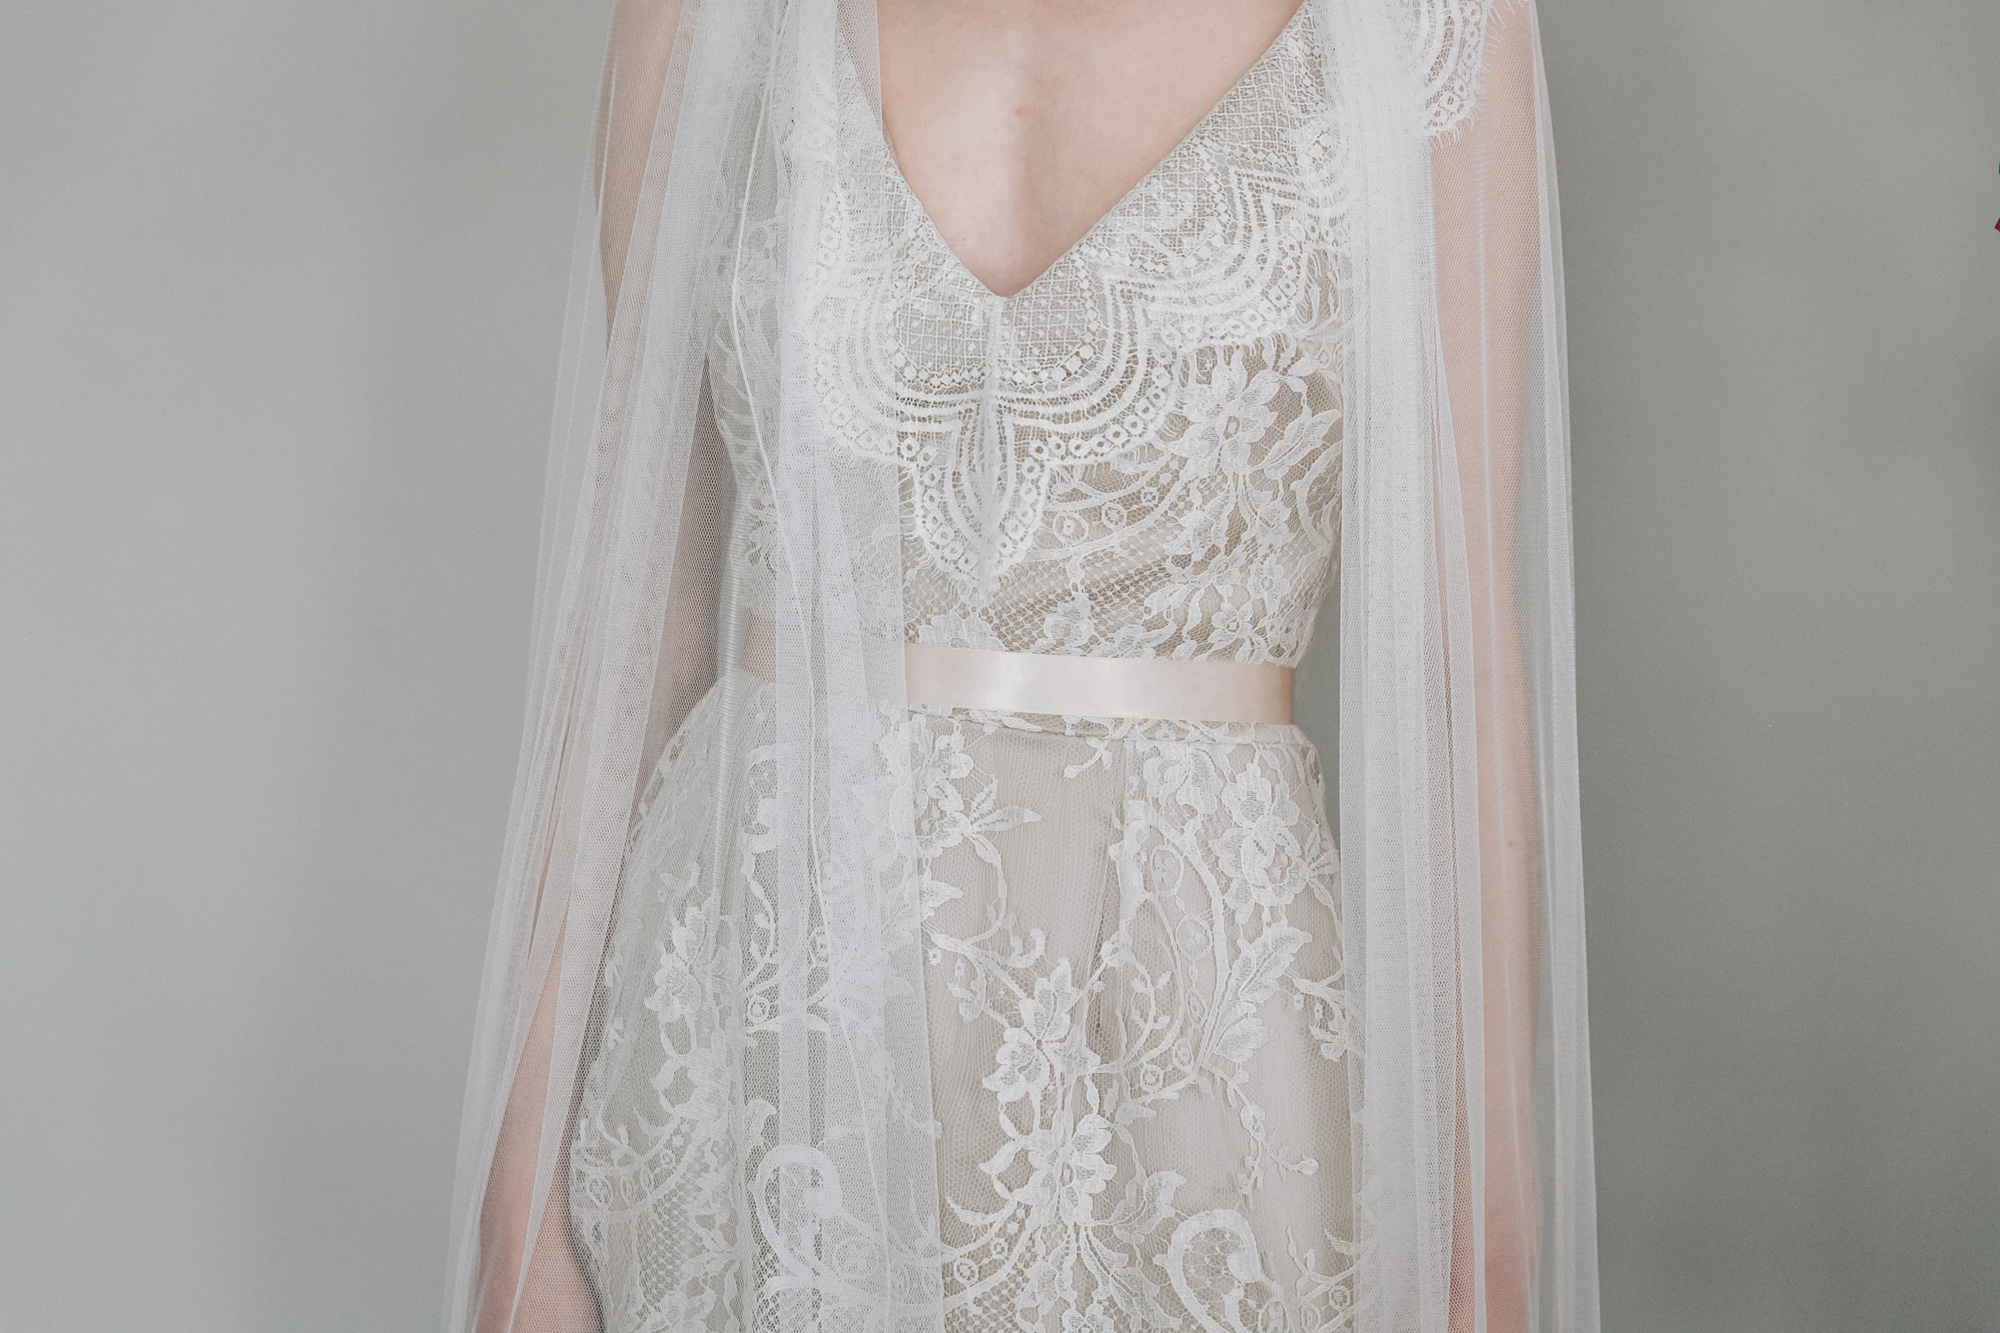 Kate-Beaumont-Sheffield-Wild-Lupin-Bohemian-Lace-Wedding-Gown-Tiered-Skirt-15.jpg